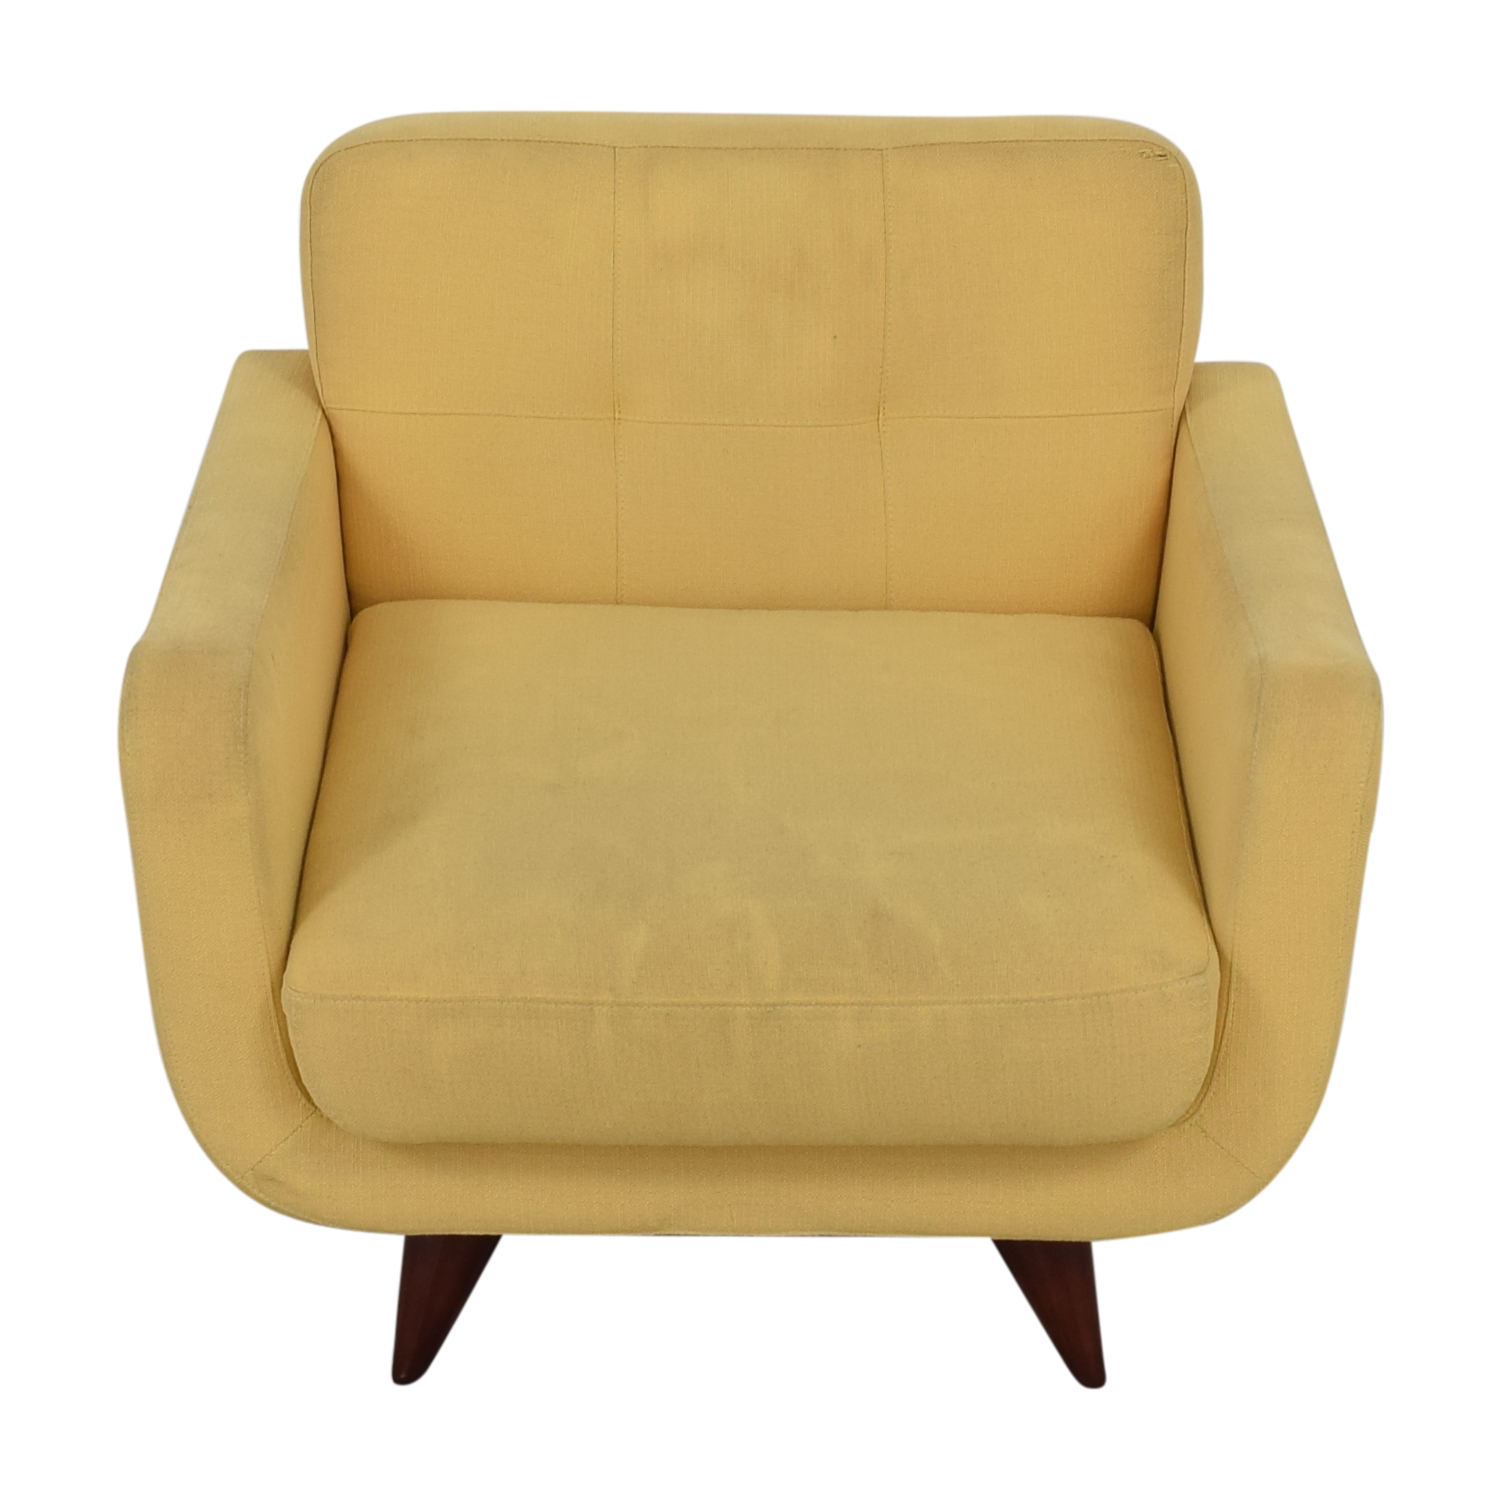 Room & Board Room & Board Anson Chair coupon